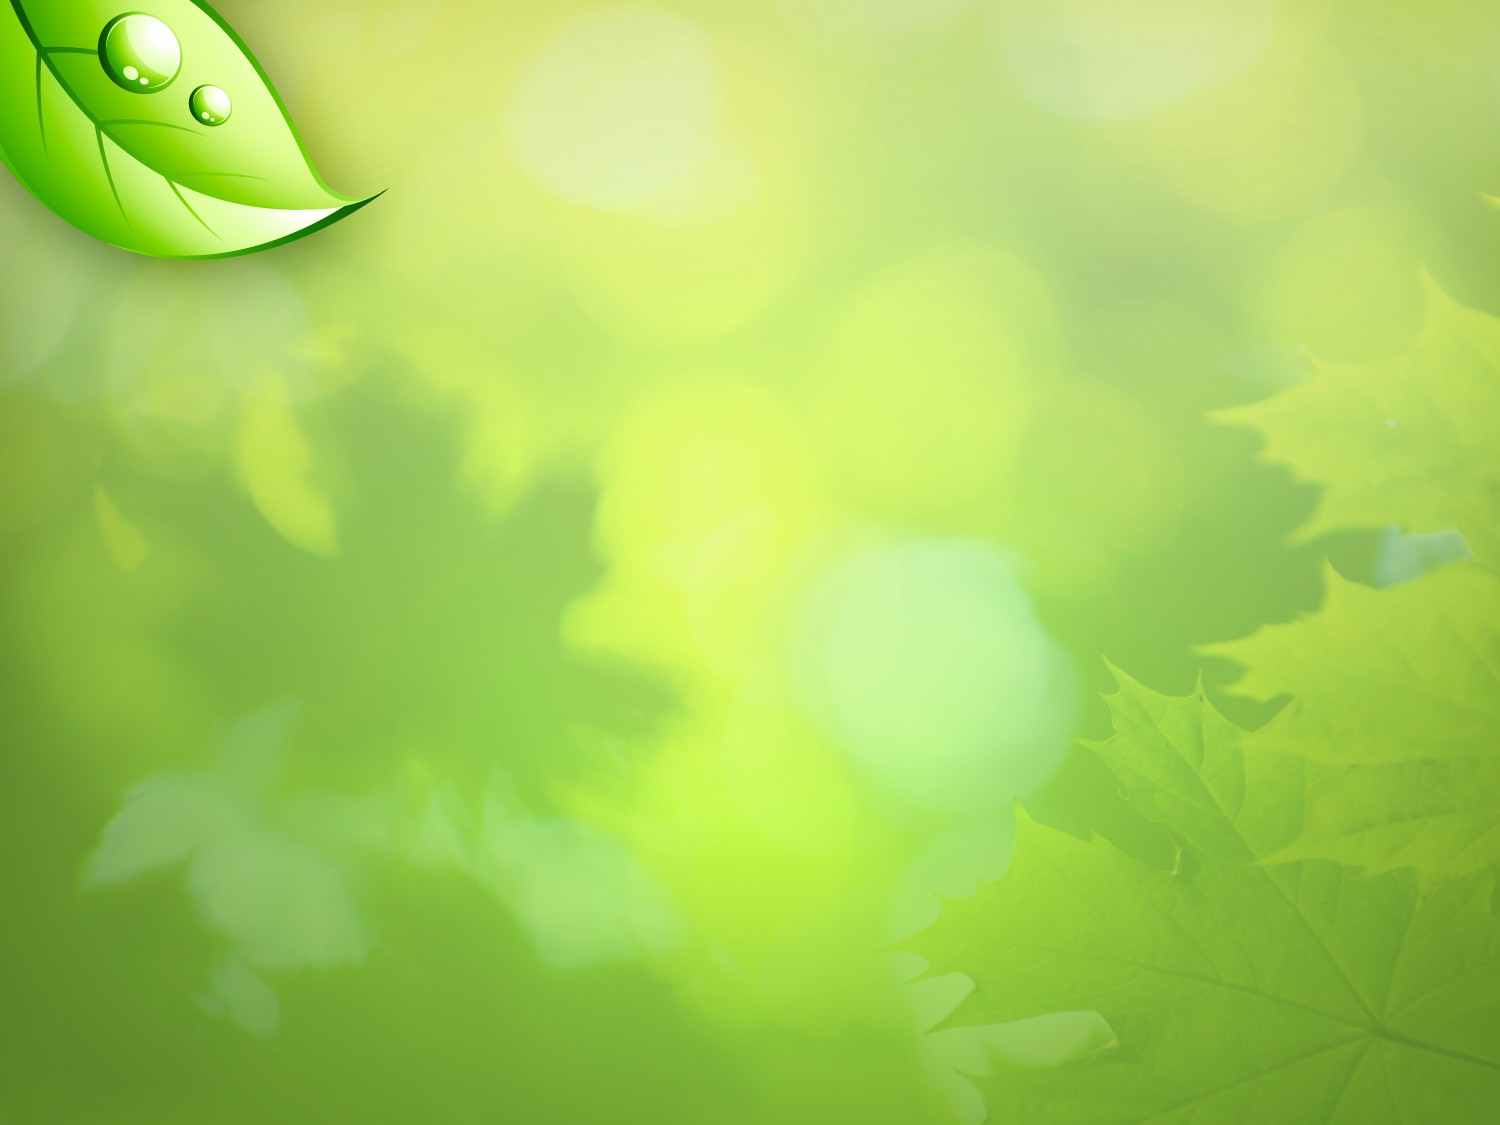 Free Download New Life Wallpaper 1500x1125 For Your